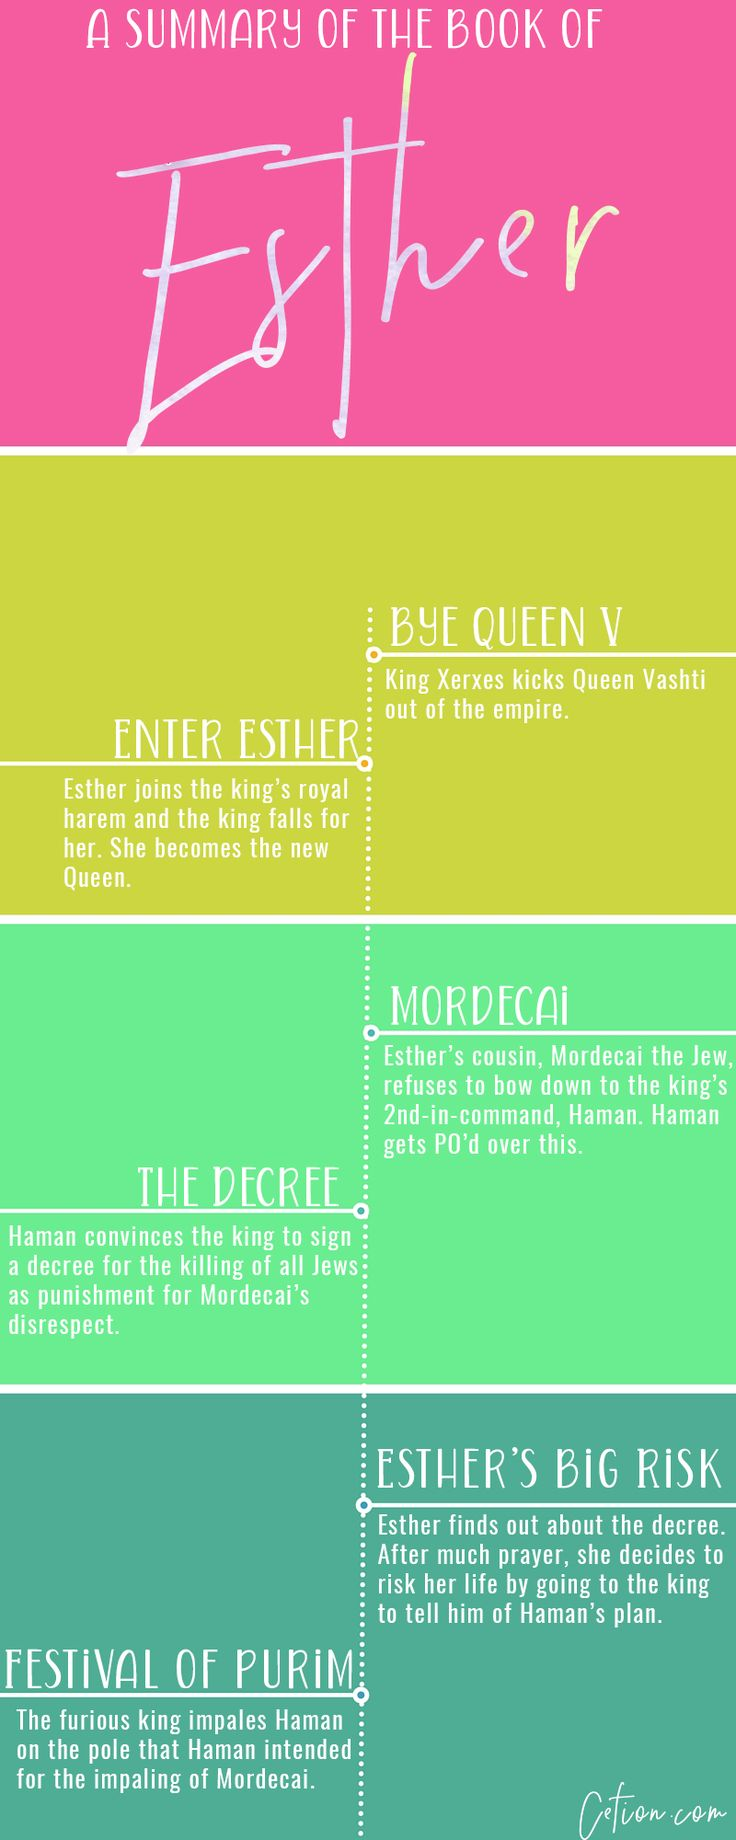 Book of Esther Infographic                                                                                                                                                                                 More